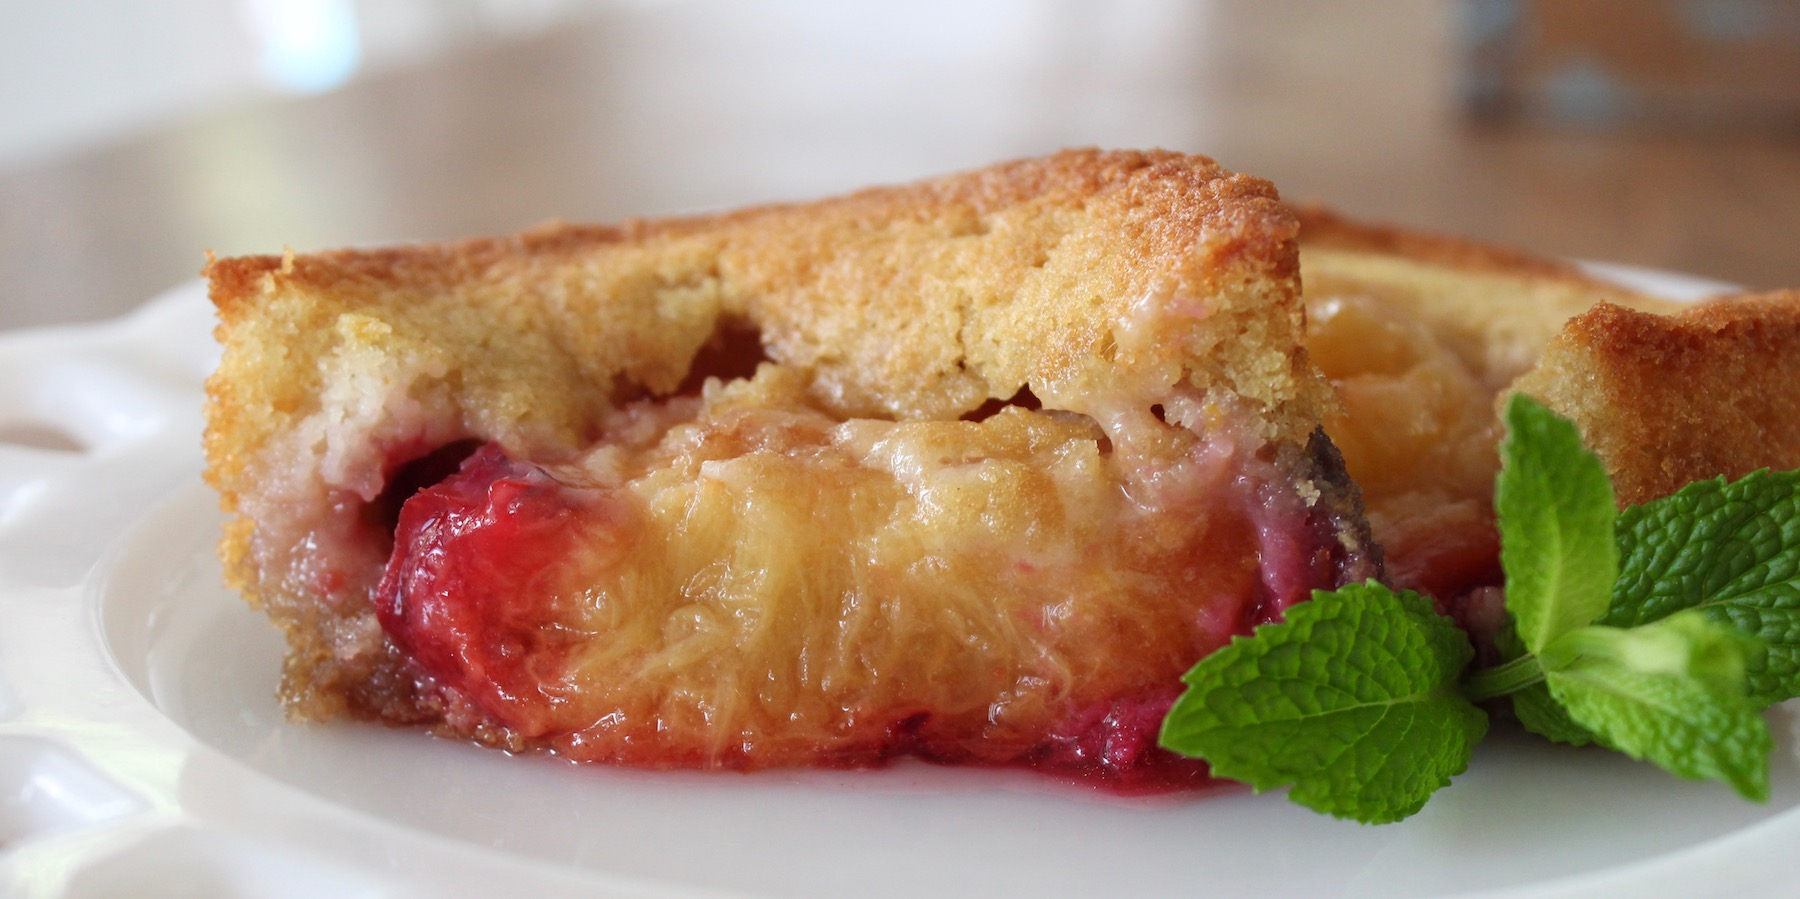 Oven Roasted Plum Cake on plate